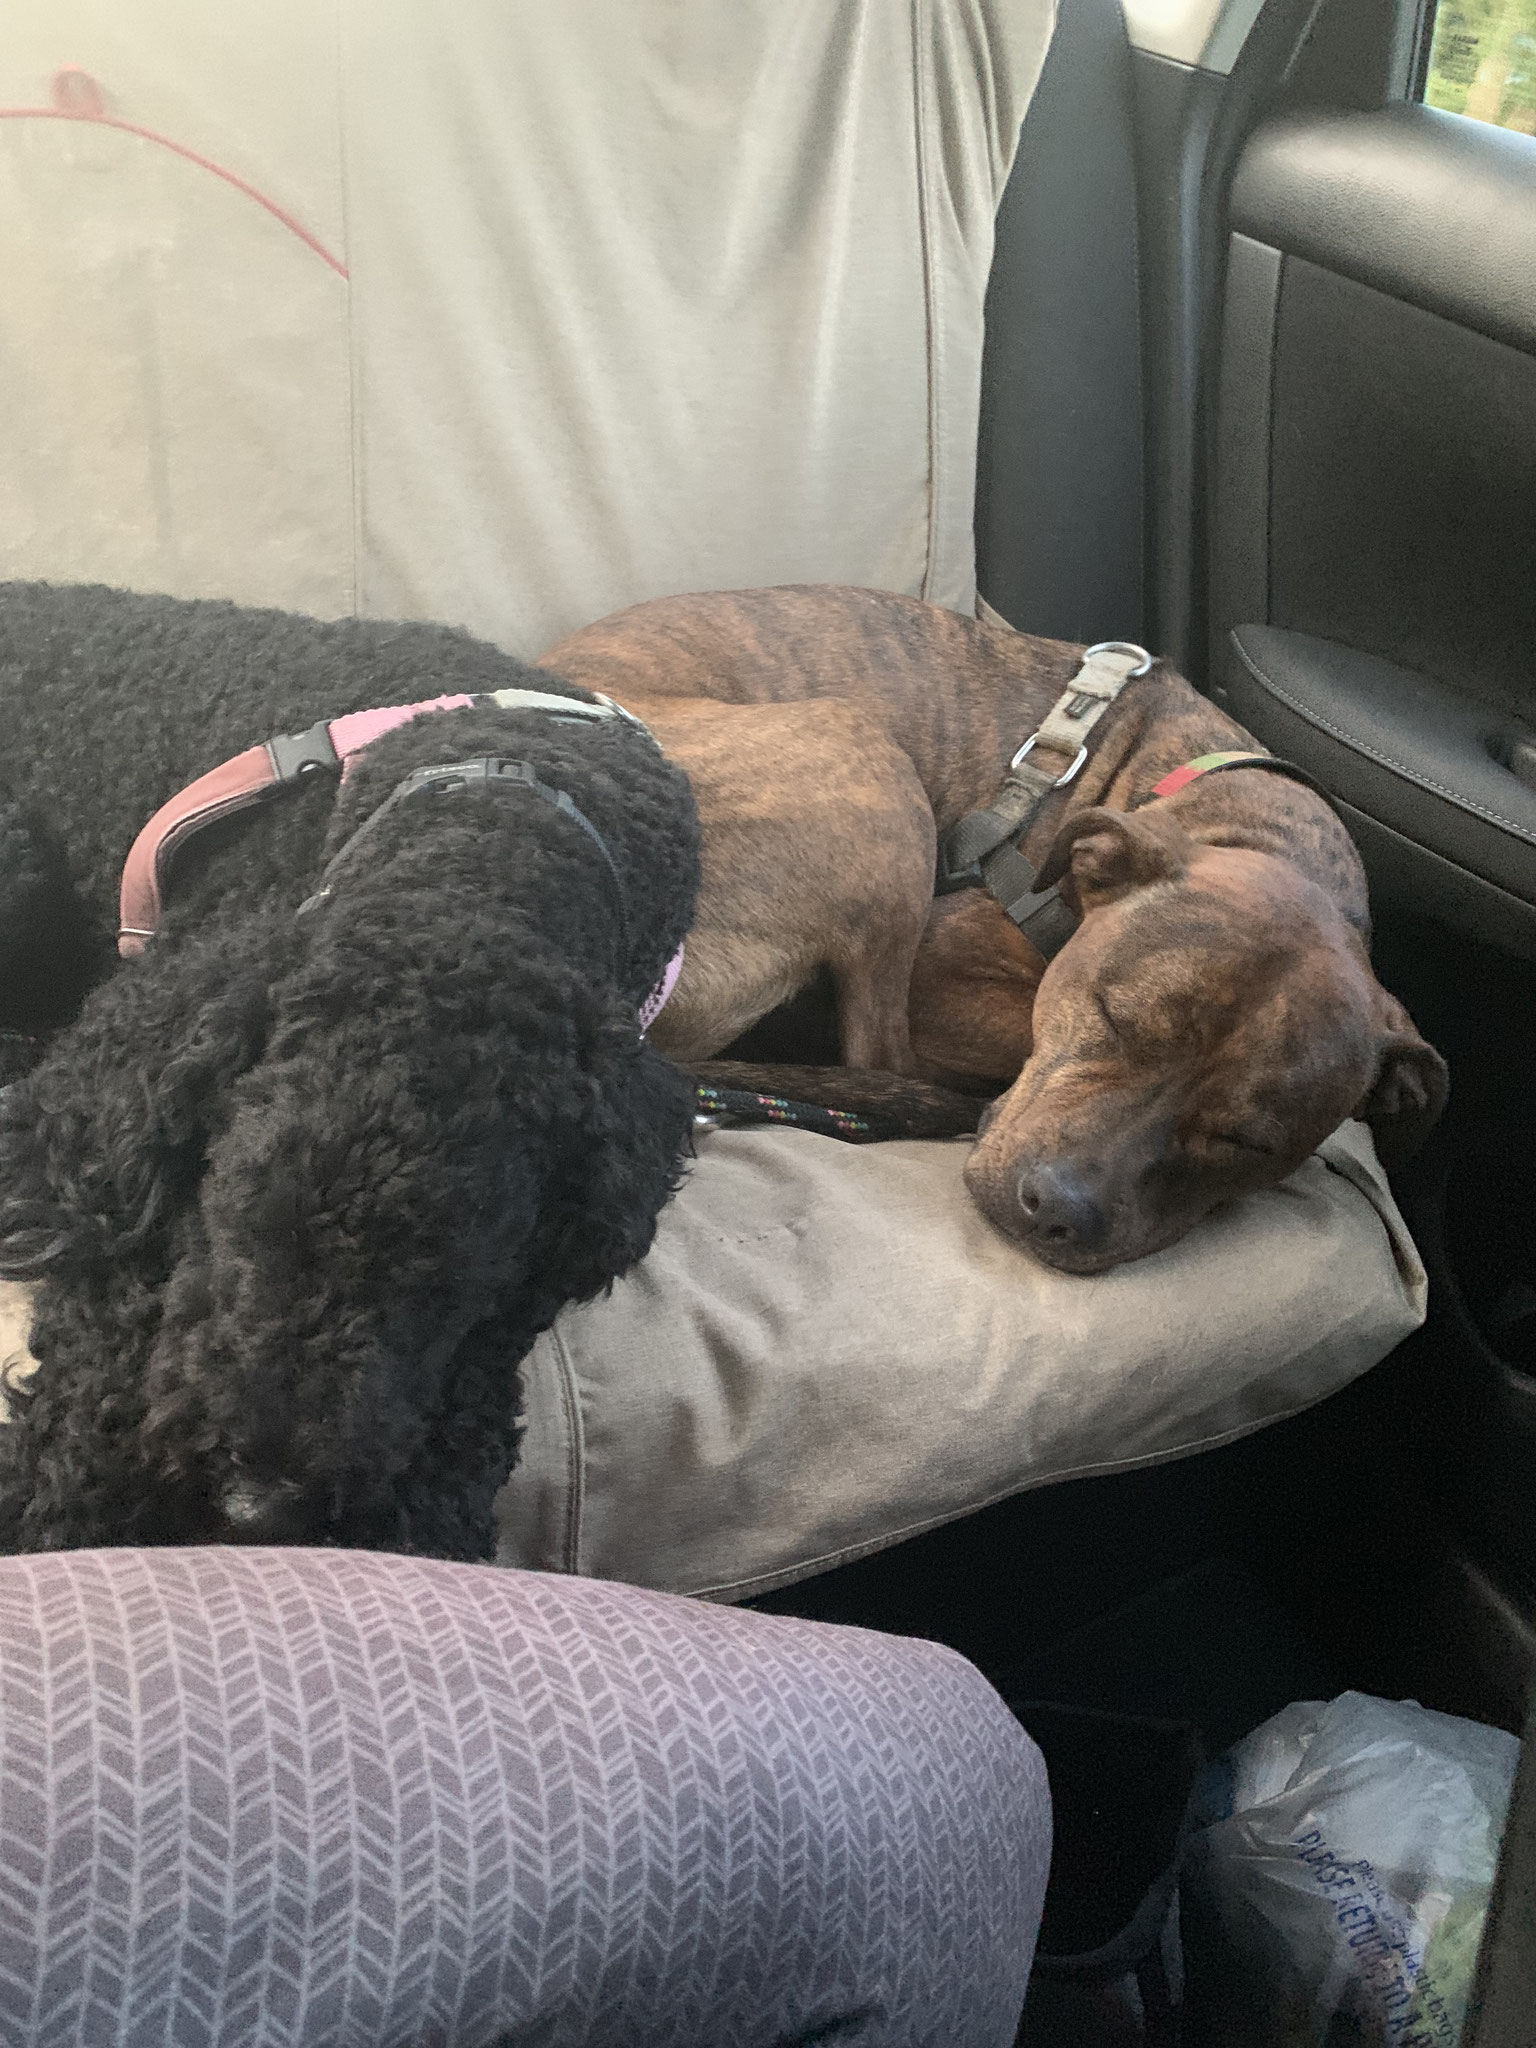 Helper dogs Heera (poodle) and Ren (Pitbull) snooze after a decompression walk